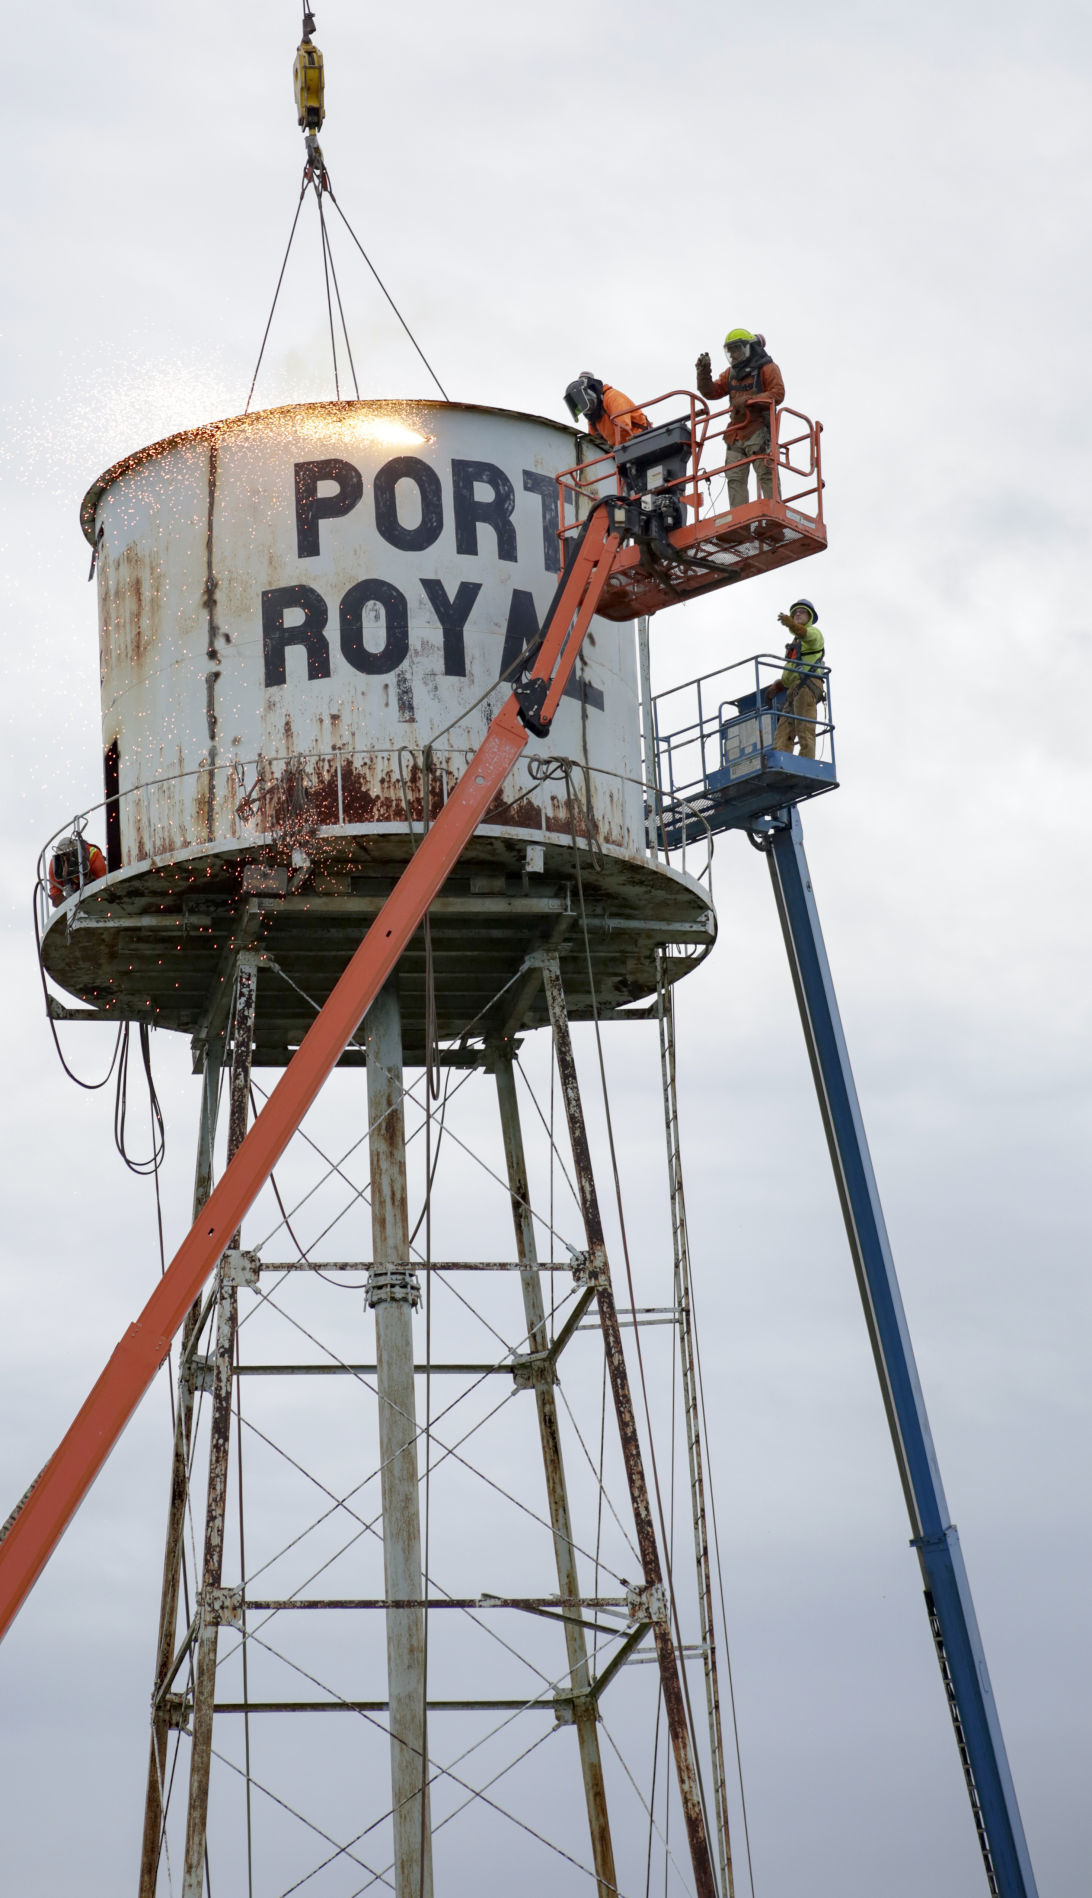 PORT ROYAL WATER TOWER DEMOLITION